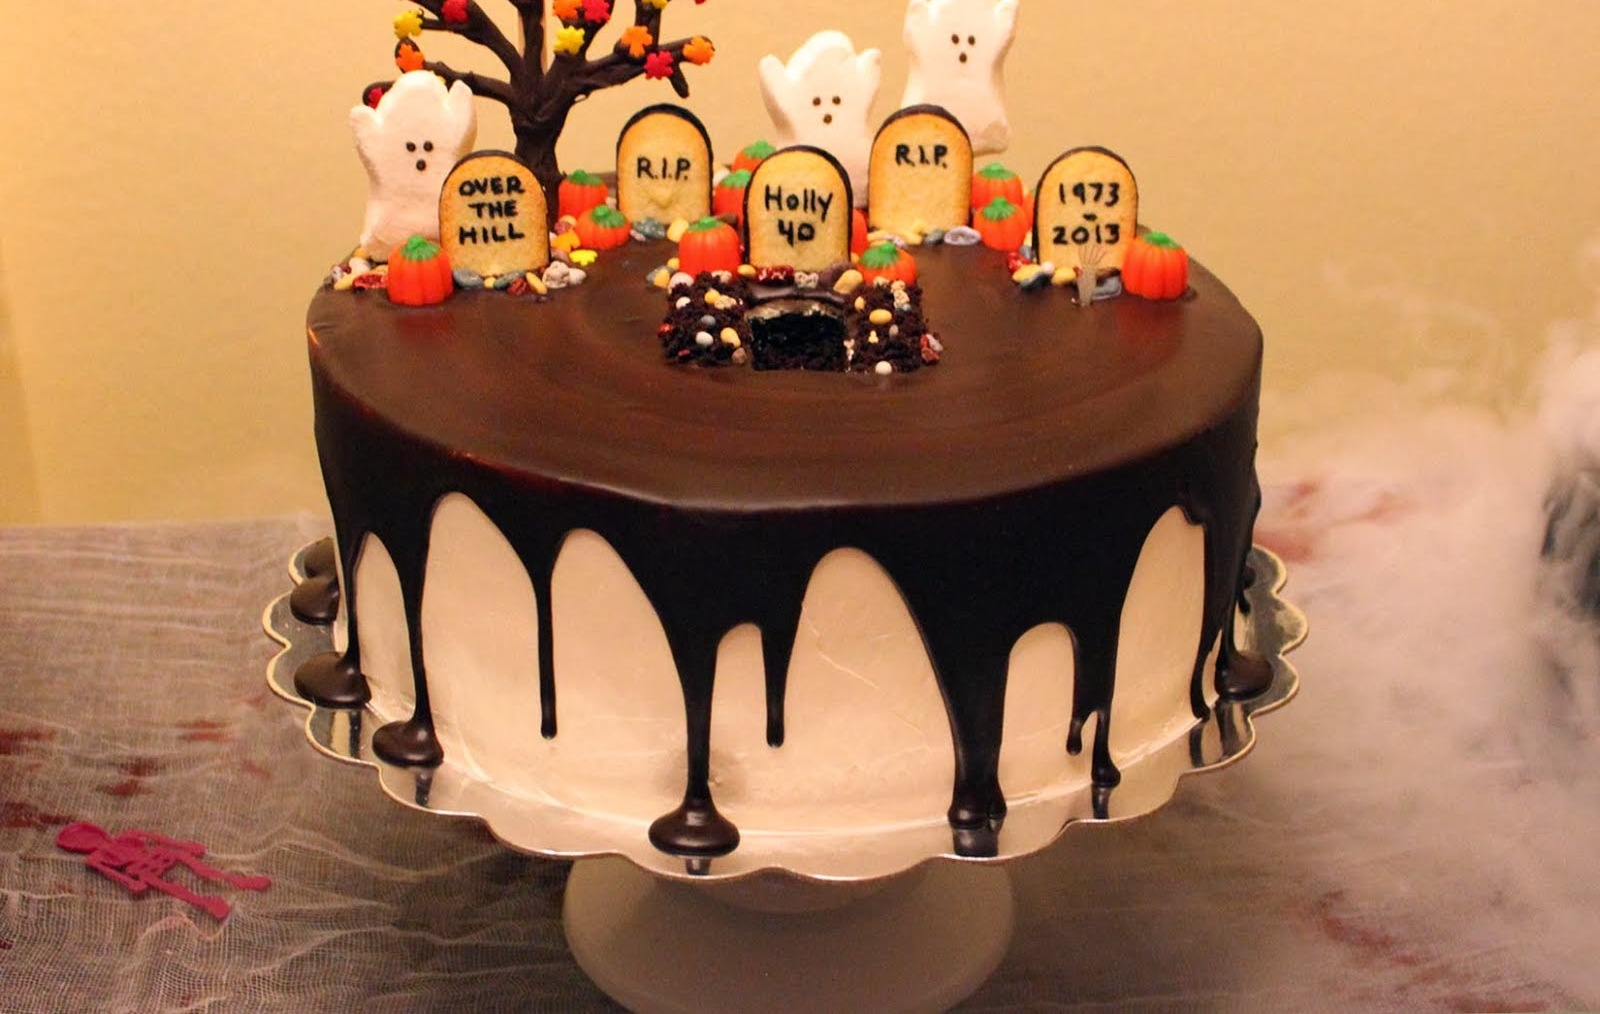 20 Best Ever Halloween Cakes Page 9 of 30